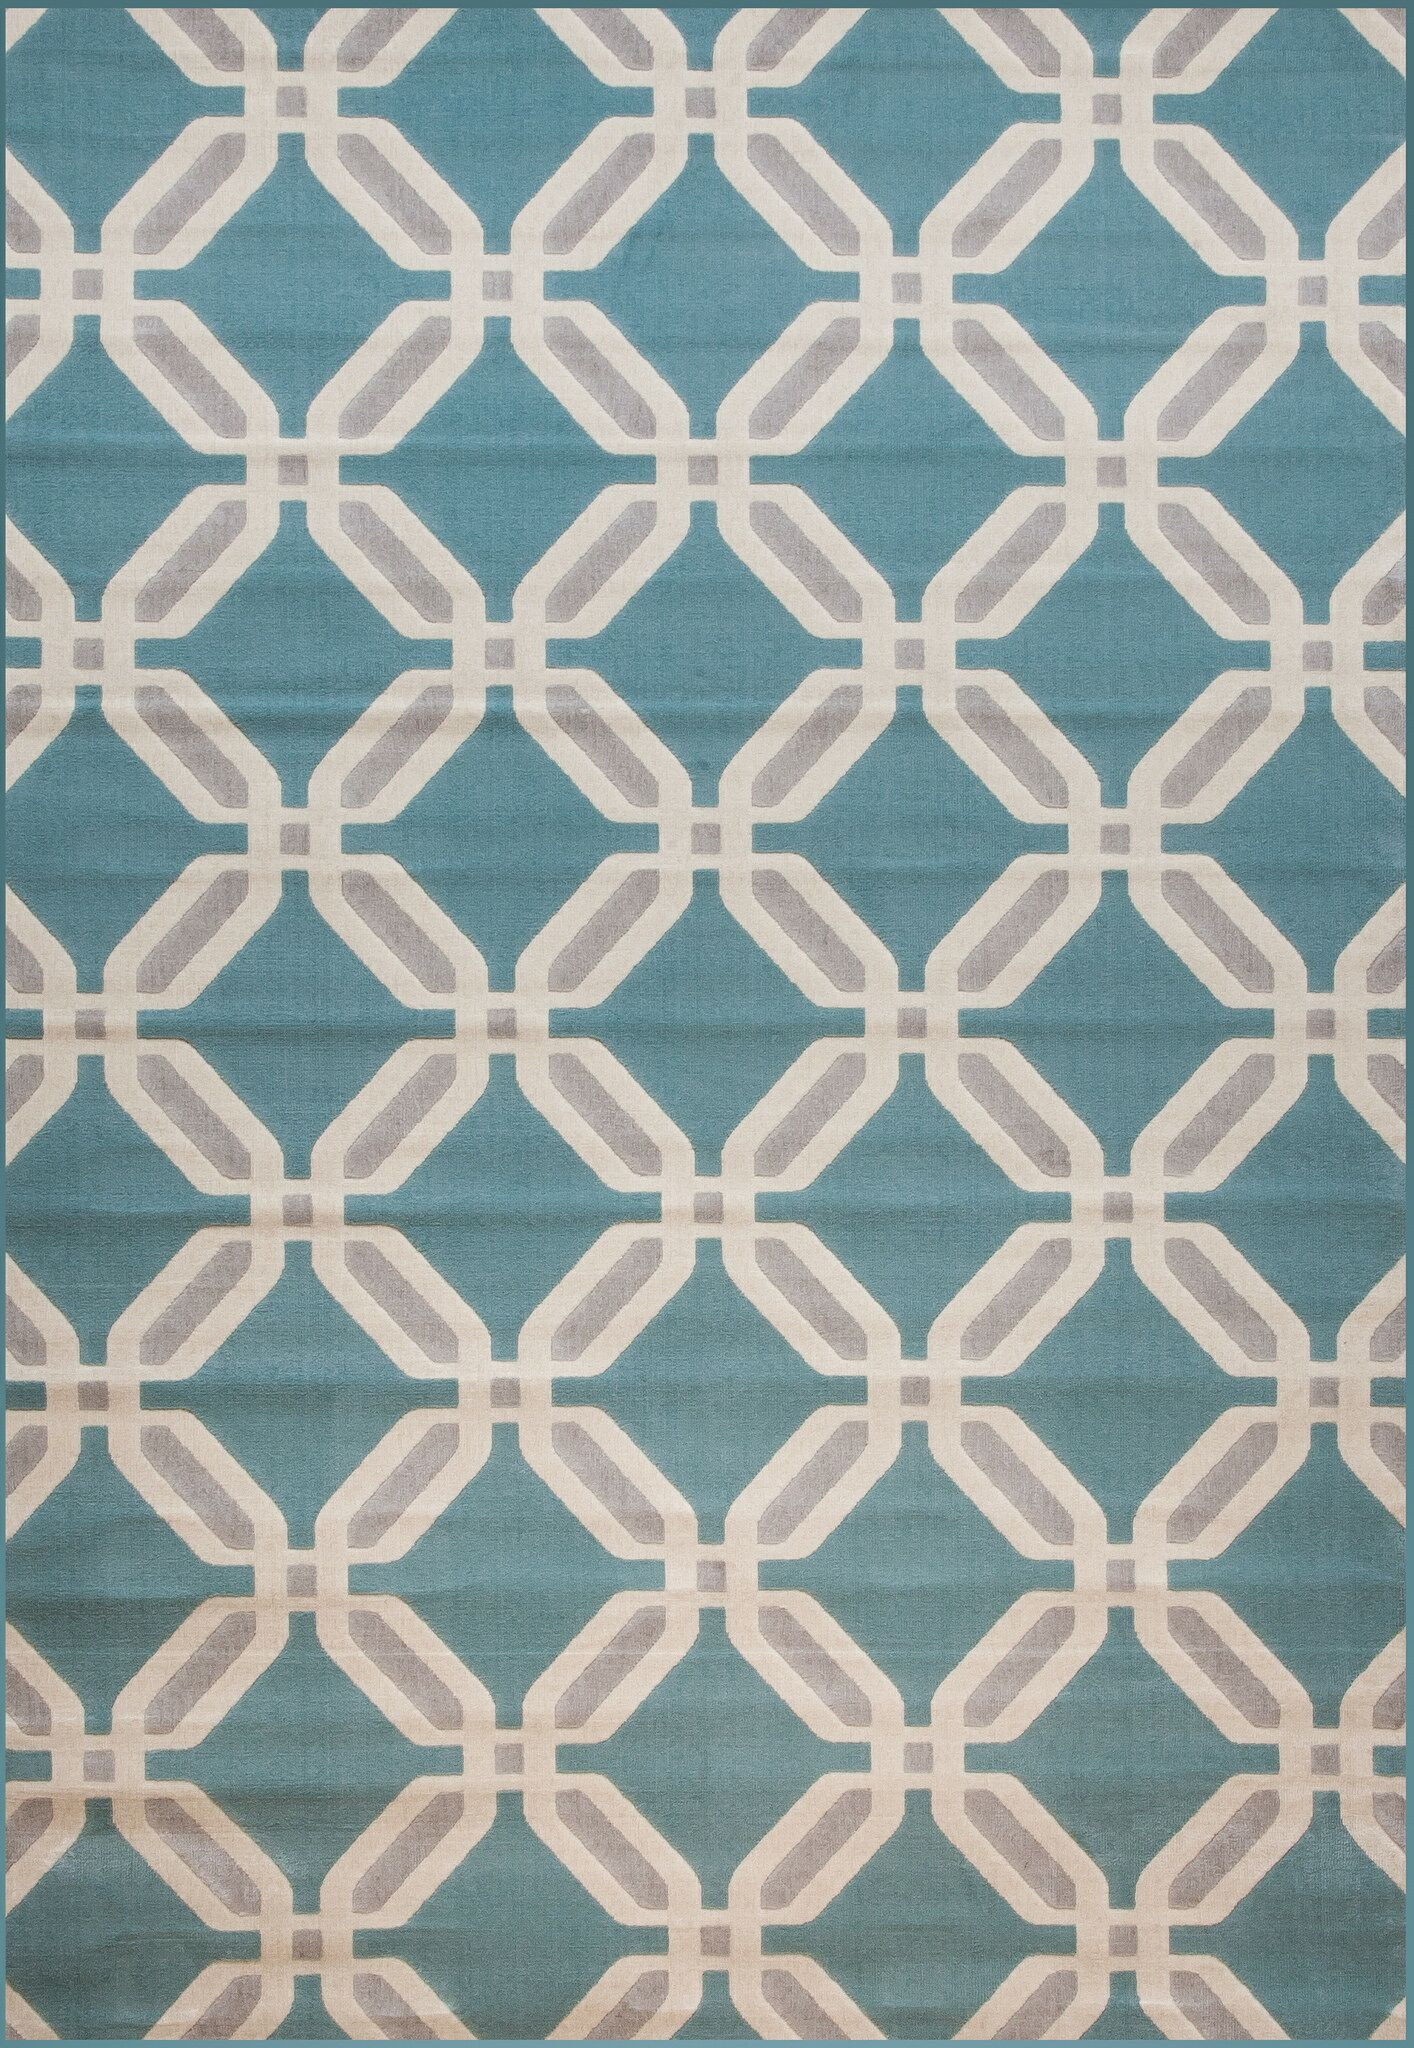 Colesberry Gray/Teal Area Rug Rug Size: 7'9